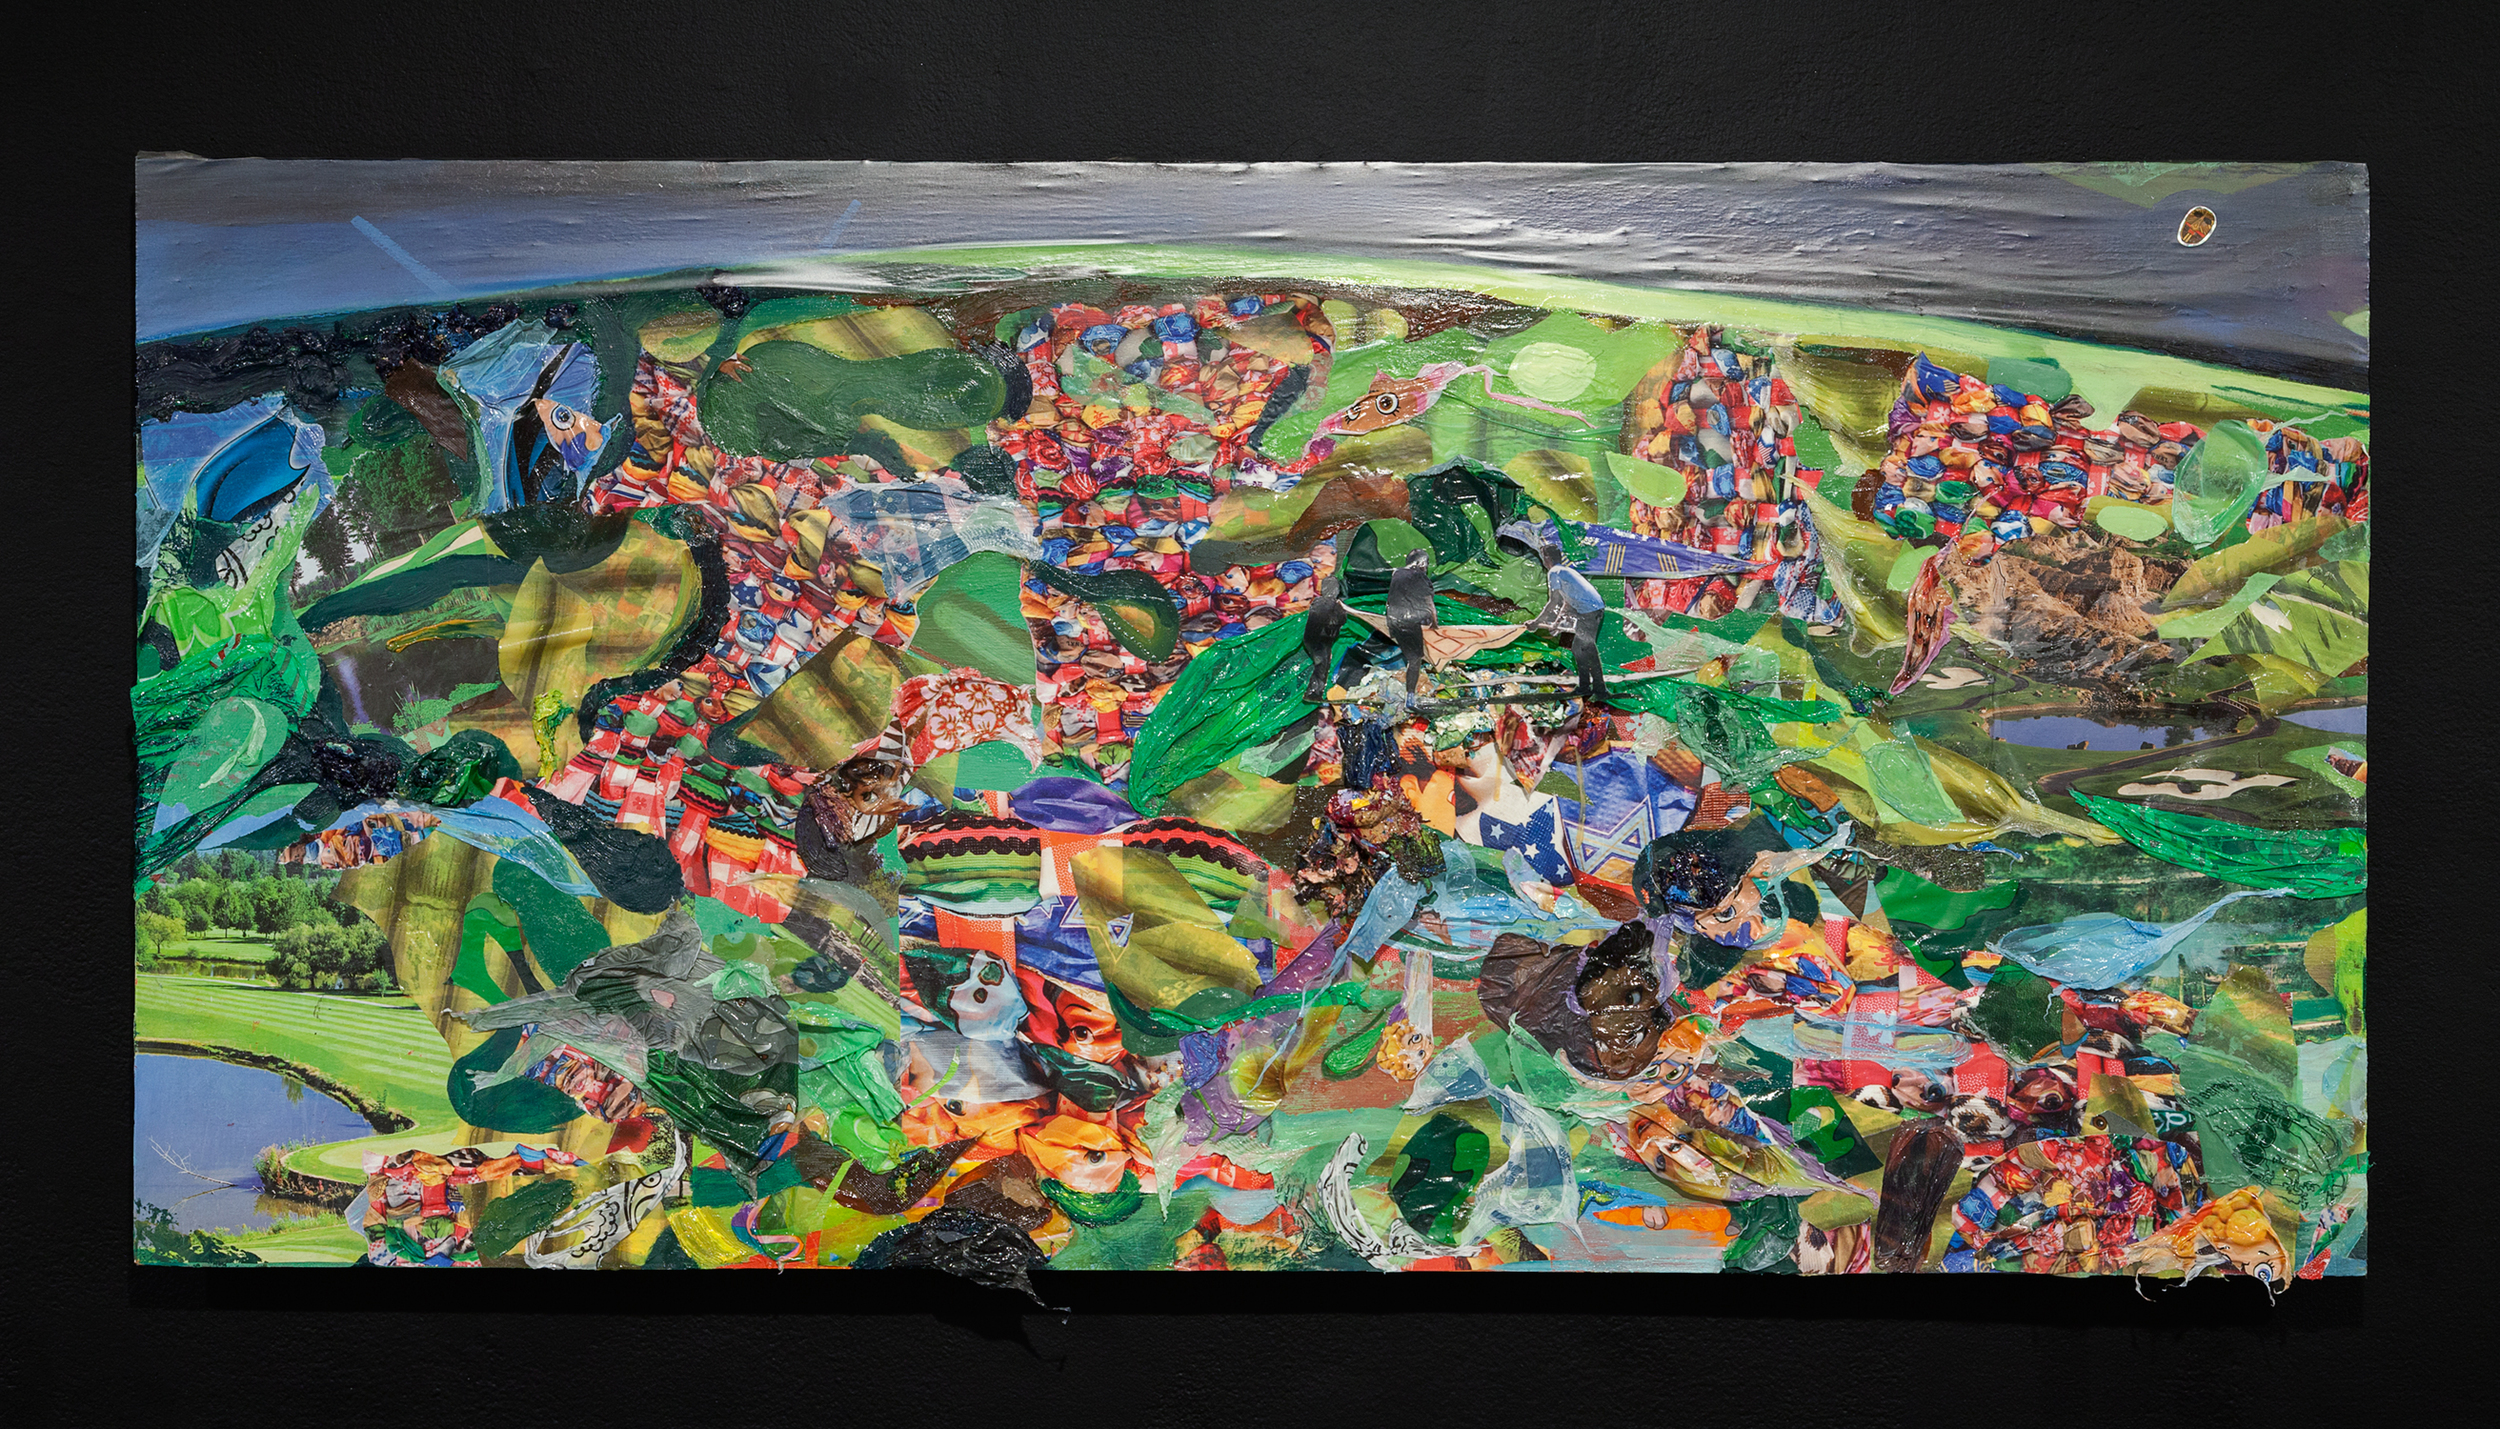 Screening for Adhesive Ancestors  (Detail),2015, oil, acrylic, plastic tablecloths, vinyl drawer liner, photos and stickers on wood panel, 24 x 108 x 4 inches